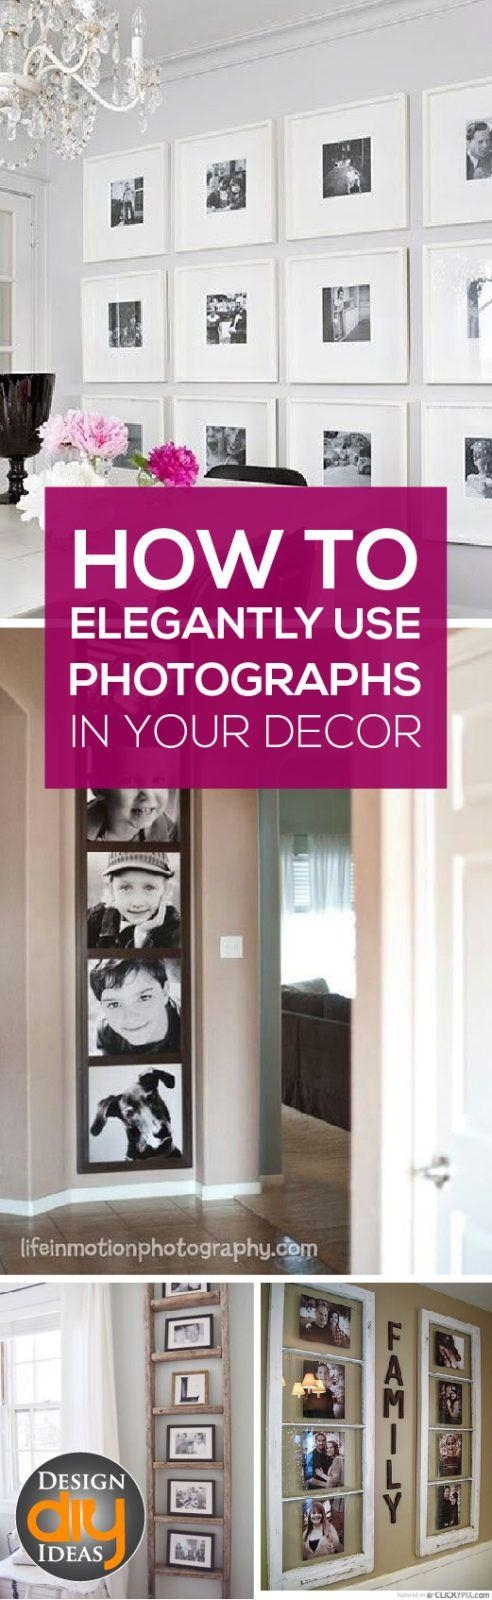 Best 25+ Moving Pictures Ideas On Pinterest | Gif Pictures, The Intended For Moving Waterfall Wall Art (Image 4 of 20)